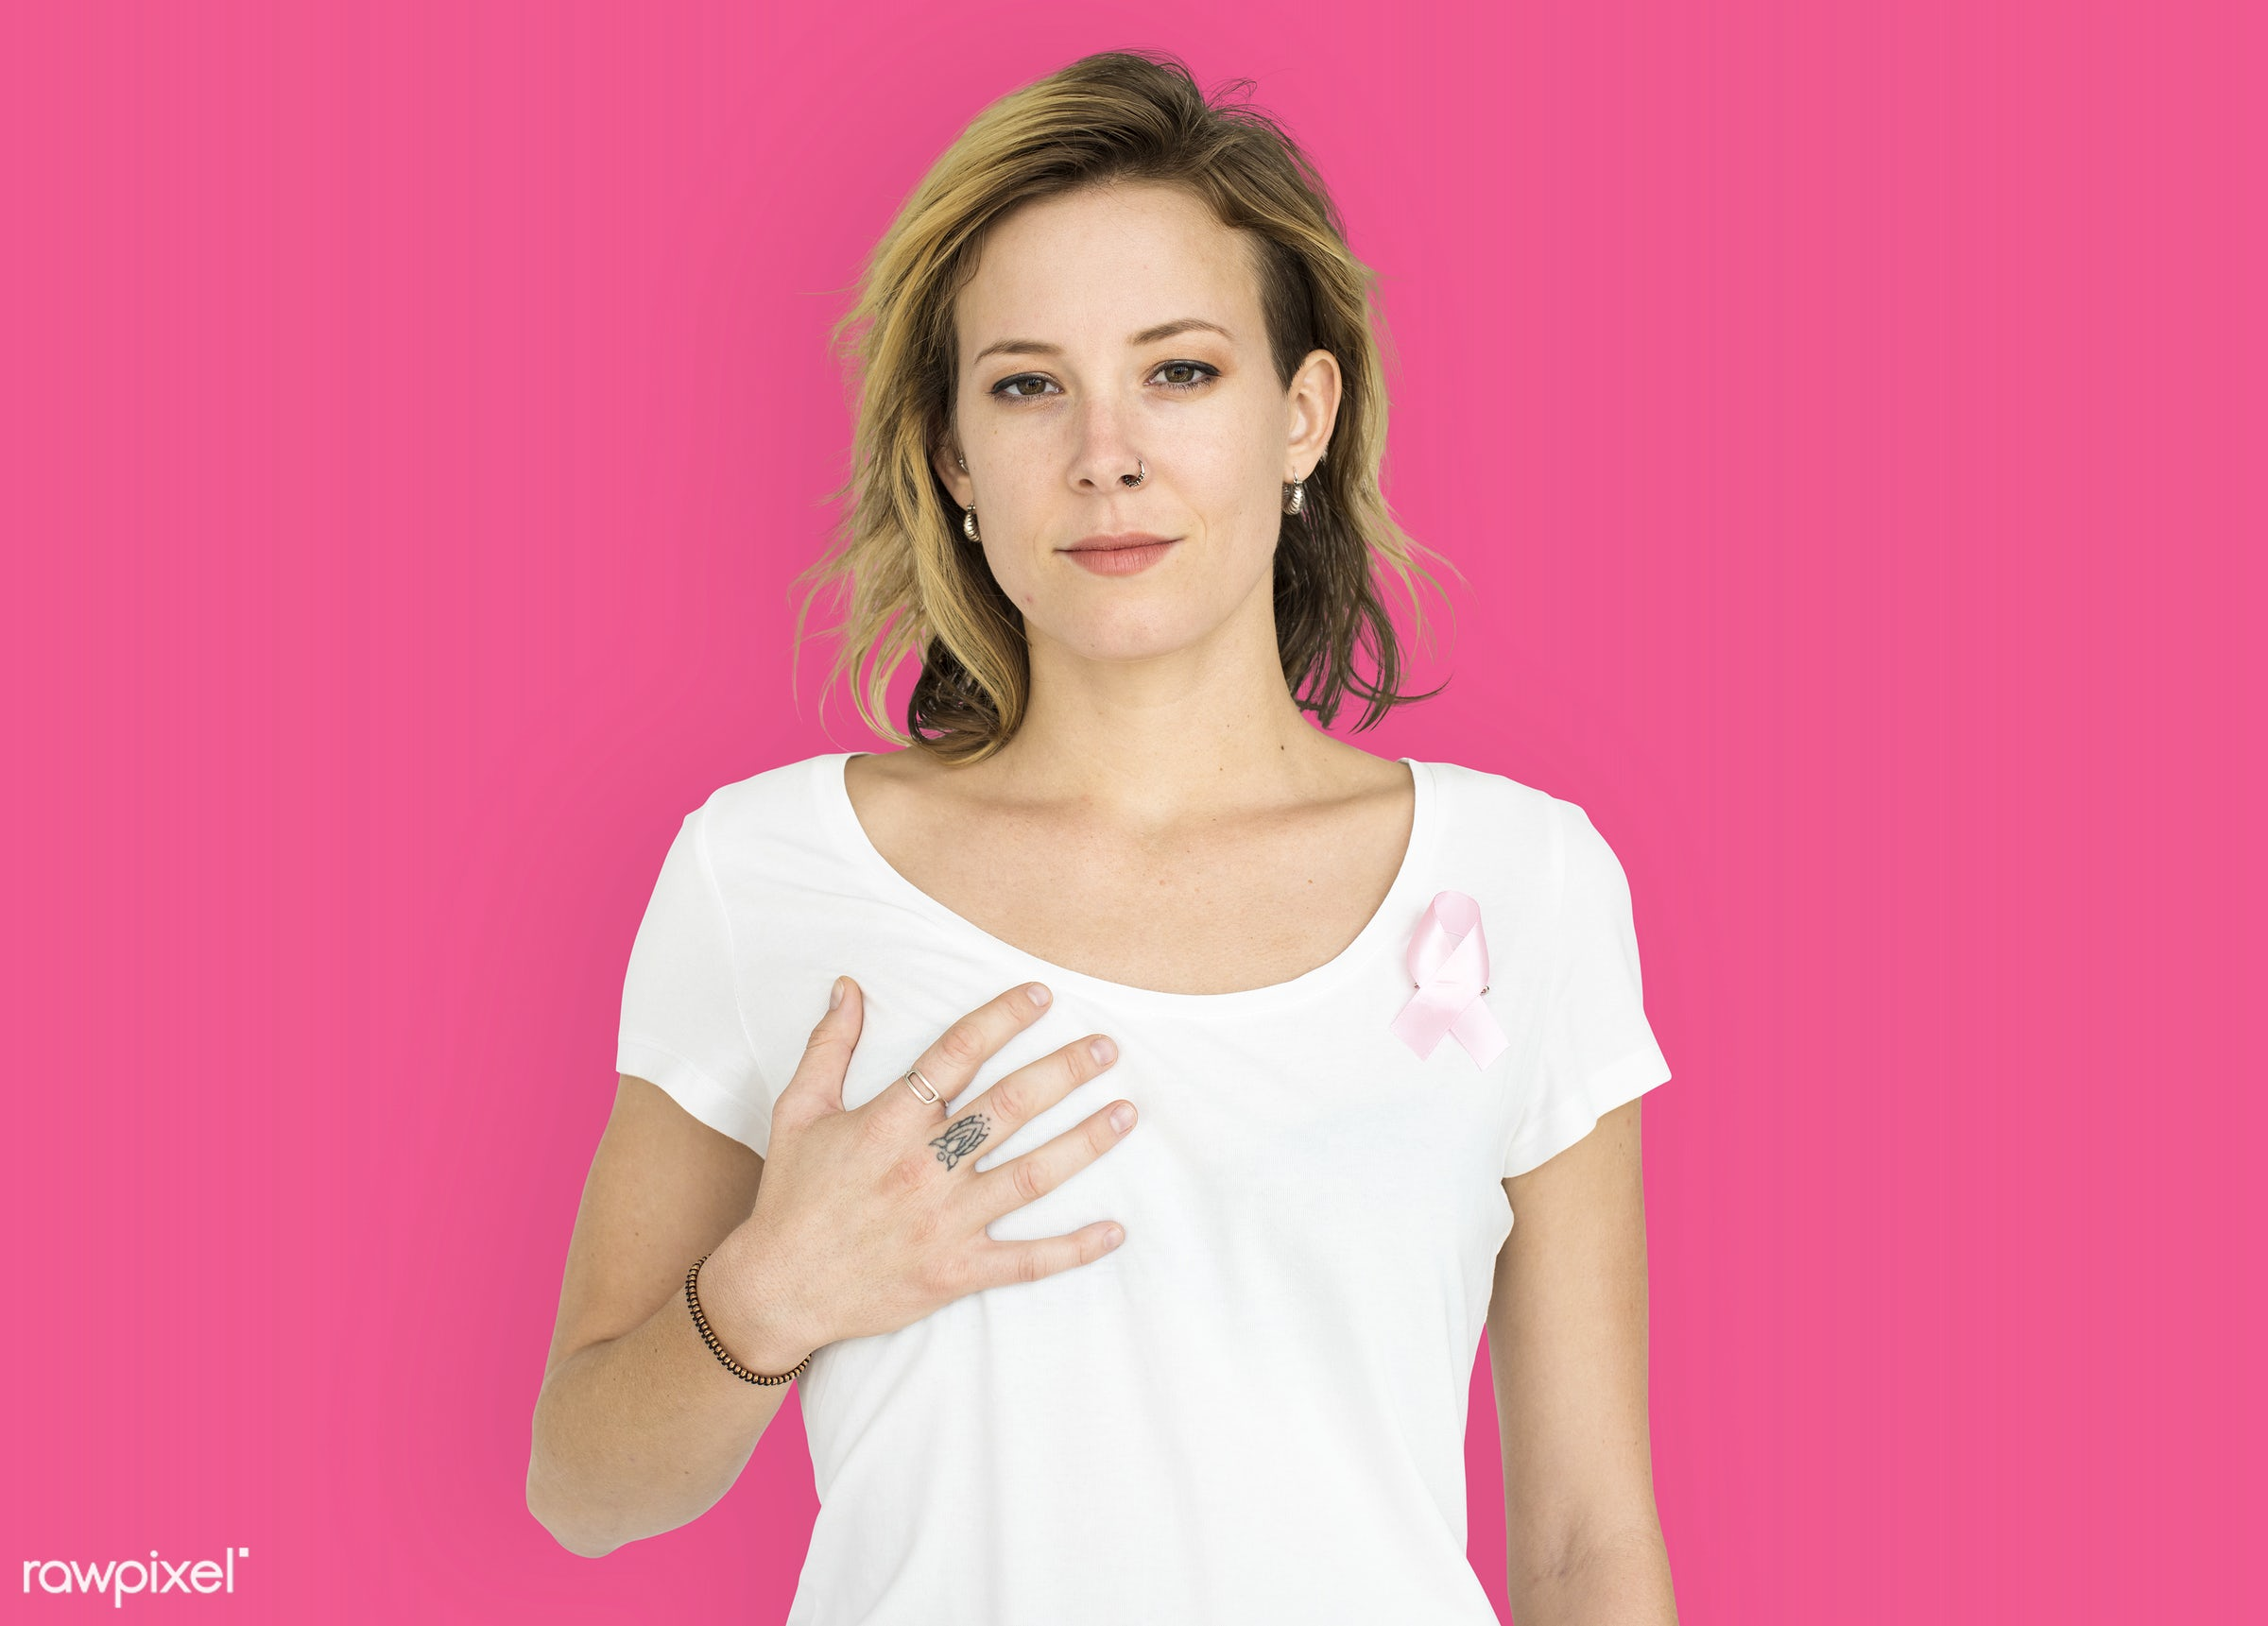 studio, expression, person, awareness, people, solo, woman, pink, smile, cheerful, smiling, isolated, pink ribbon, happiness...